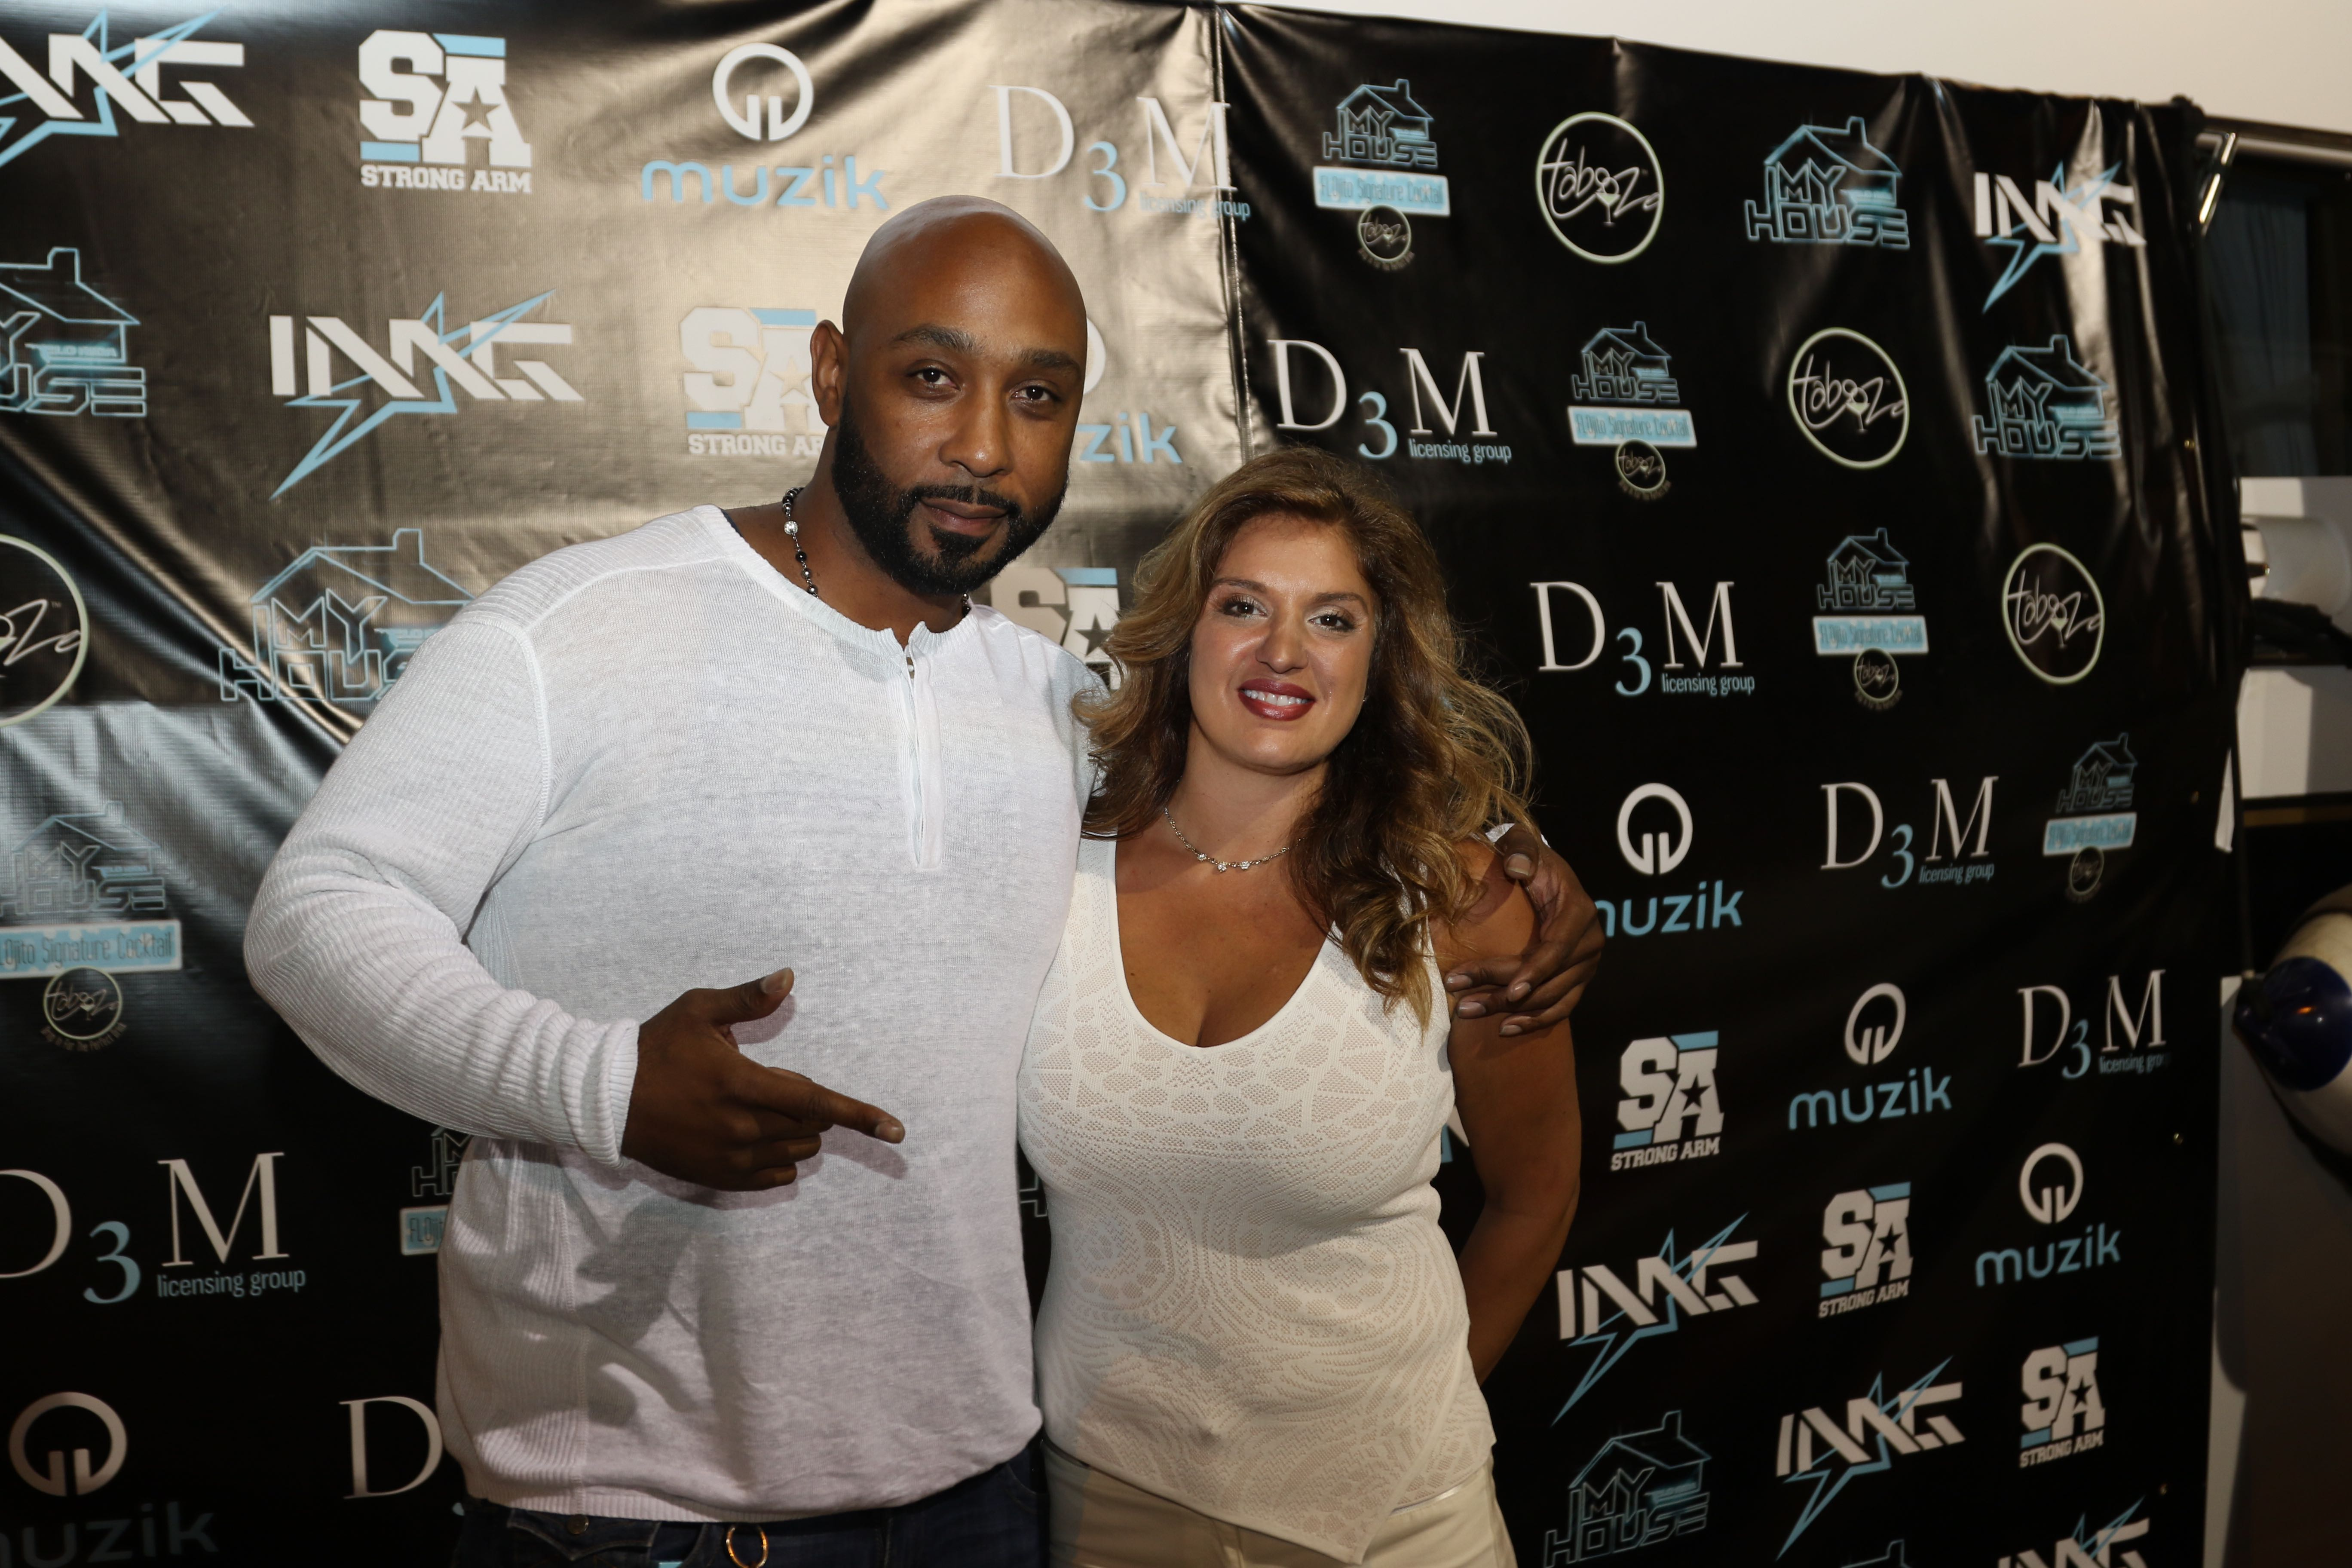 Breyan Isaac D3M CEO Marlo Gold - Flo Rida's  My House Album Launch Party - Miami Beach